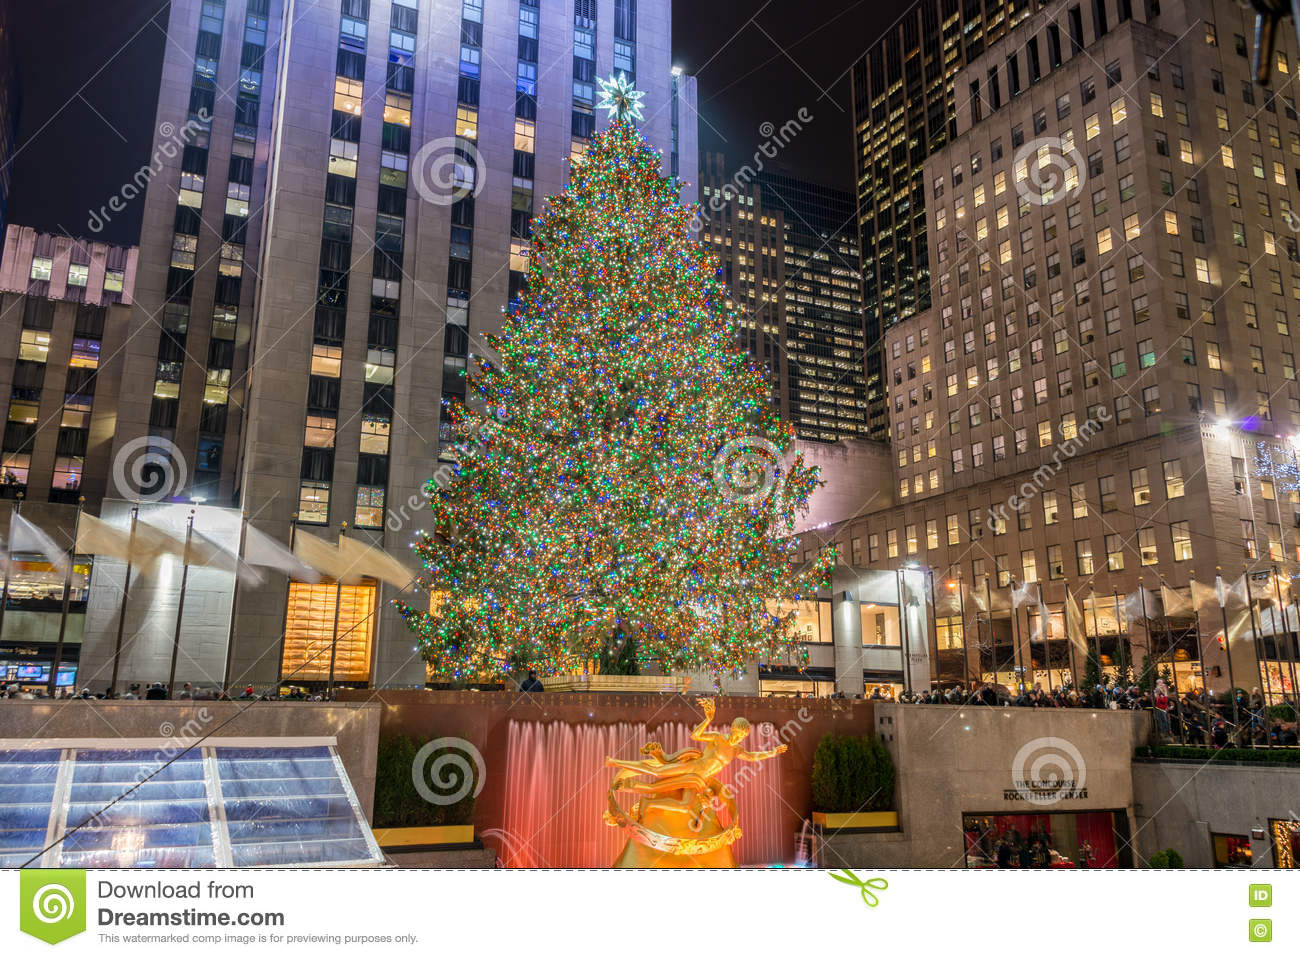 Weihnachtsbaum New York Stock Photos - Royalty Free Images